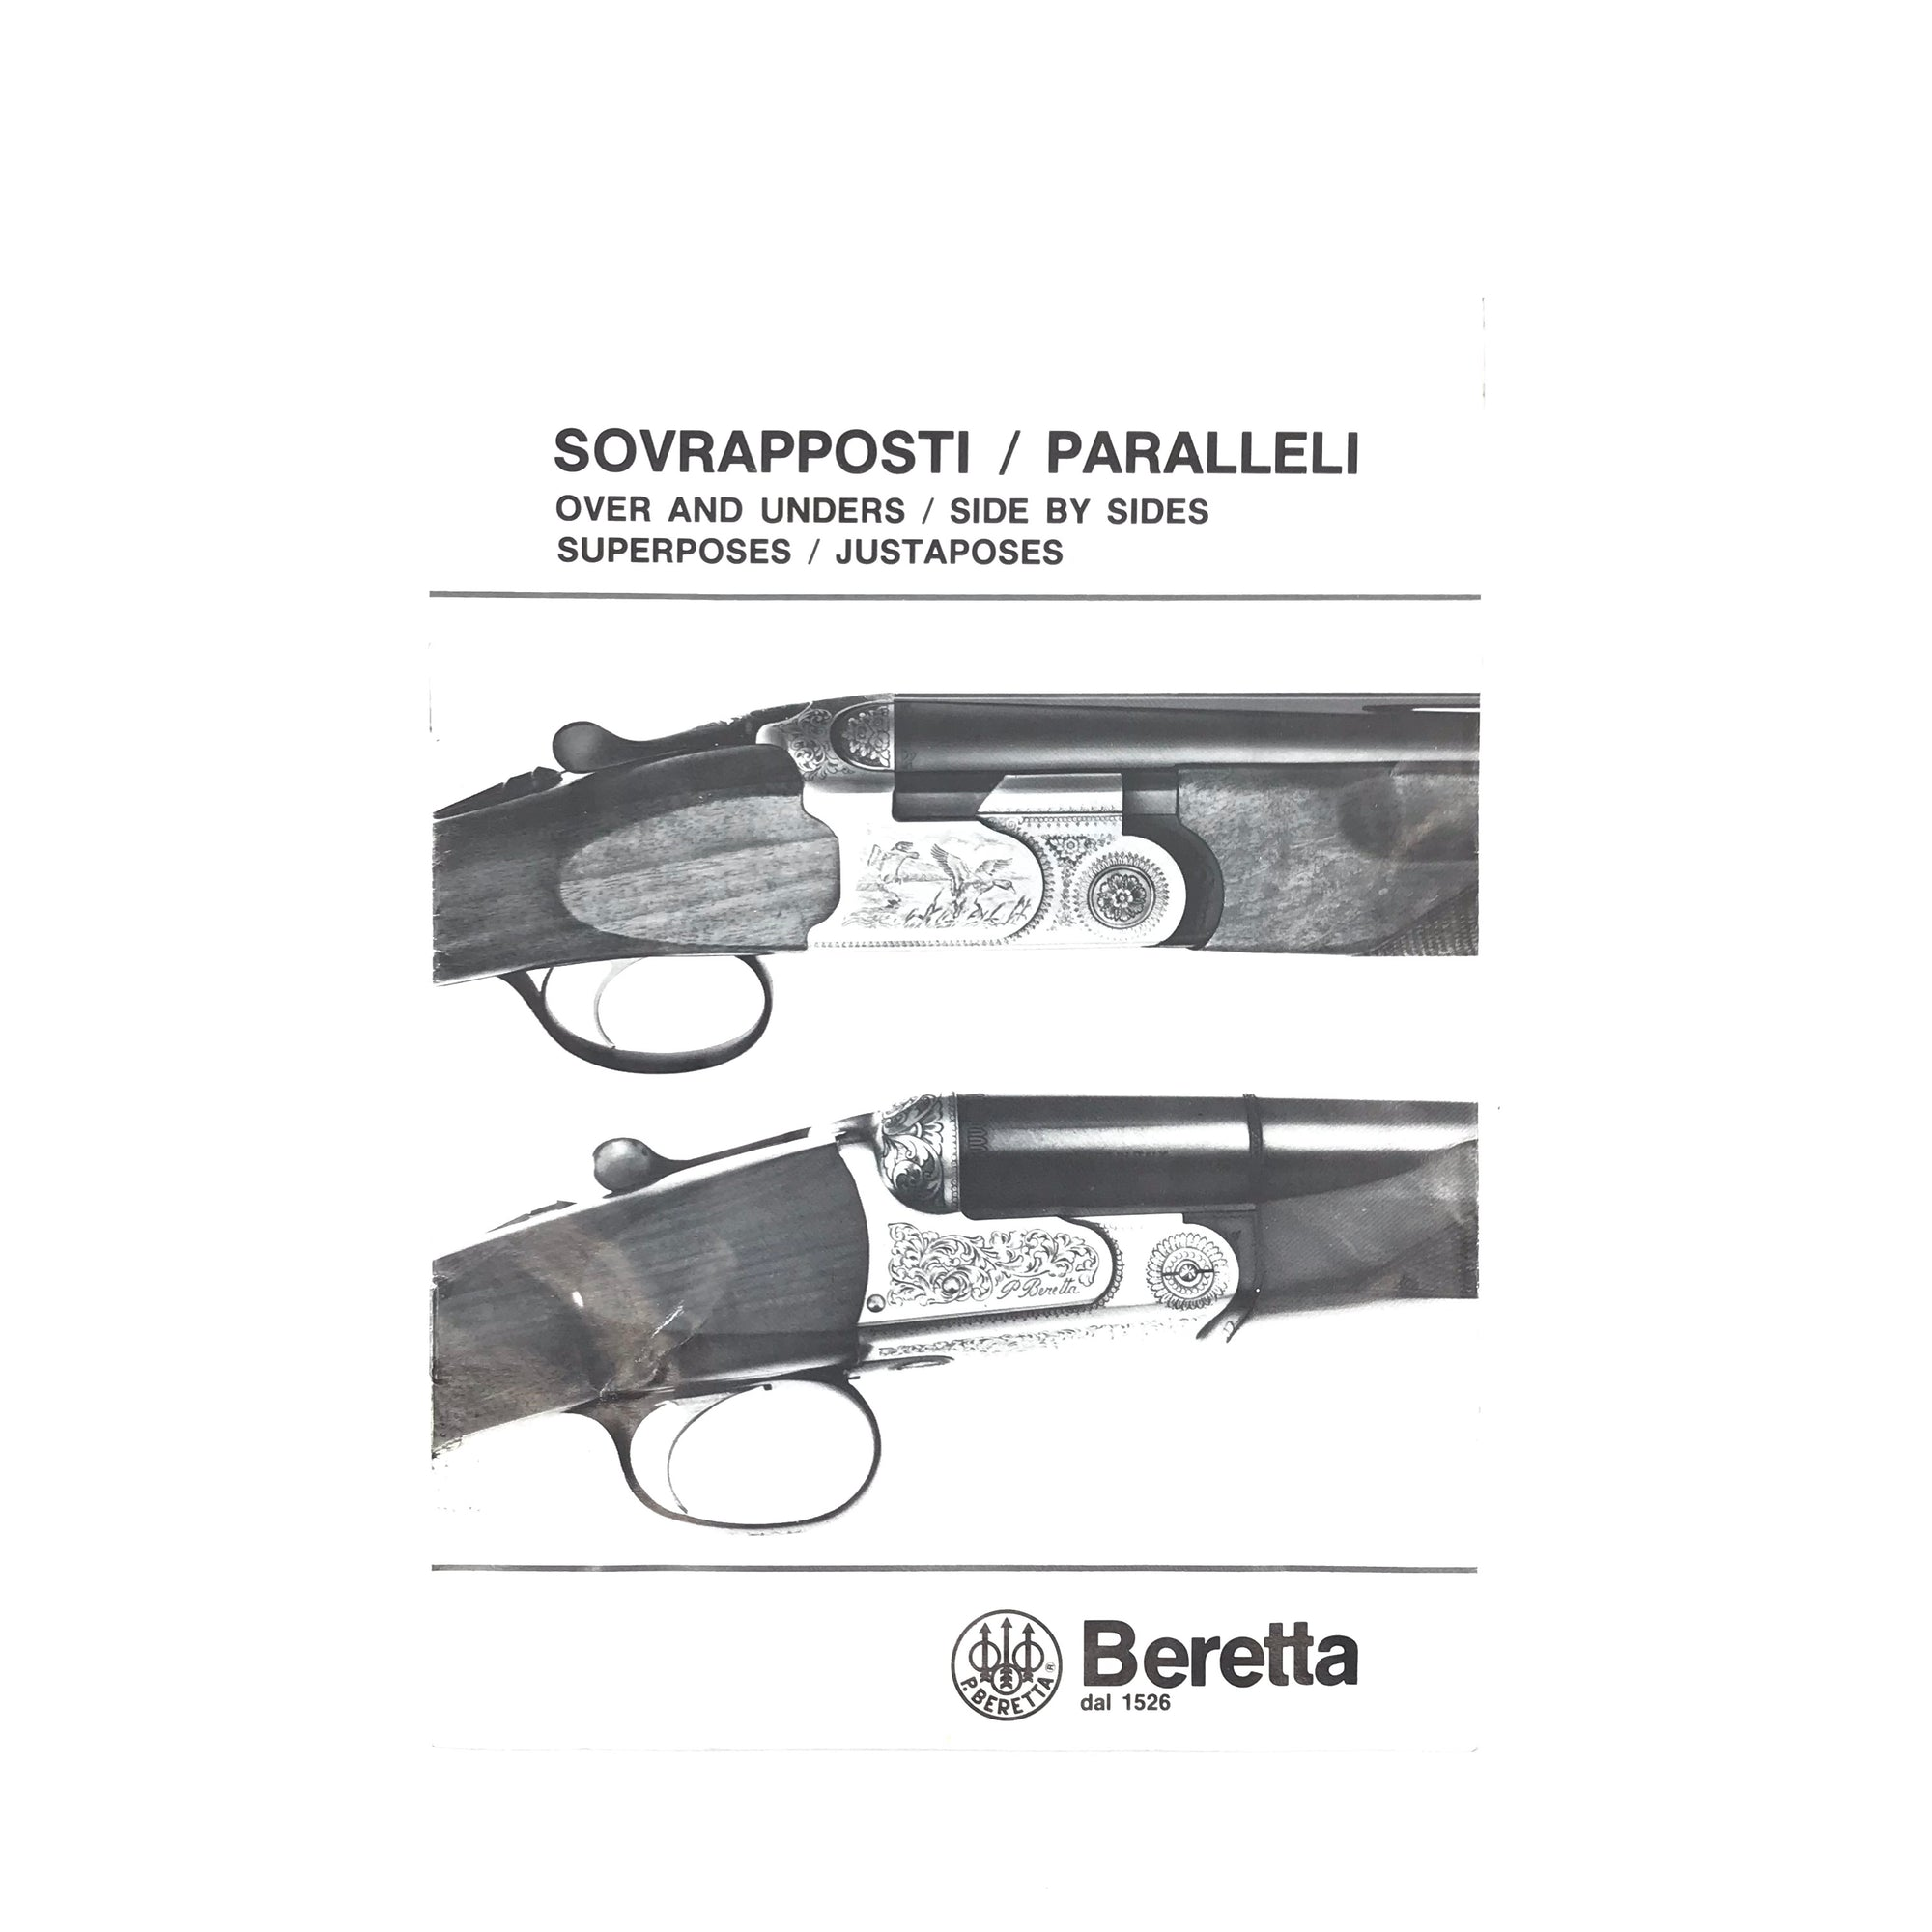 Beretta Sovrapposti/Paralleli Over & Unders / Side by Sides Instruction Manual